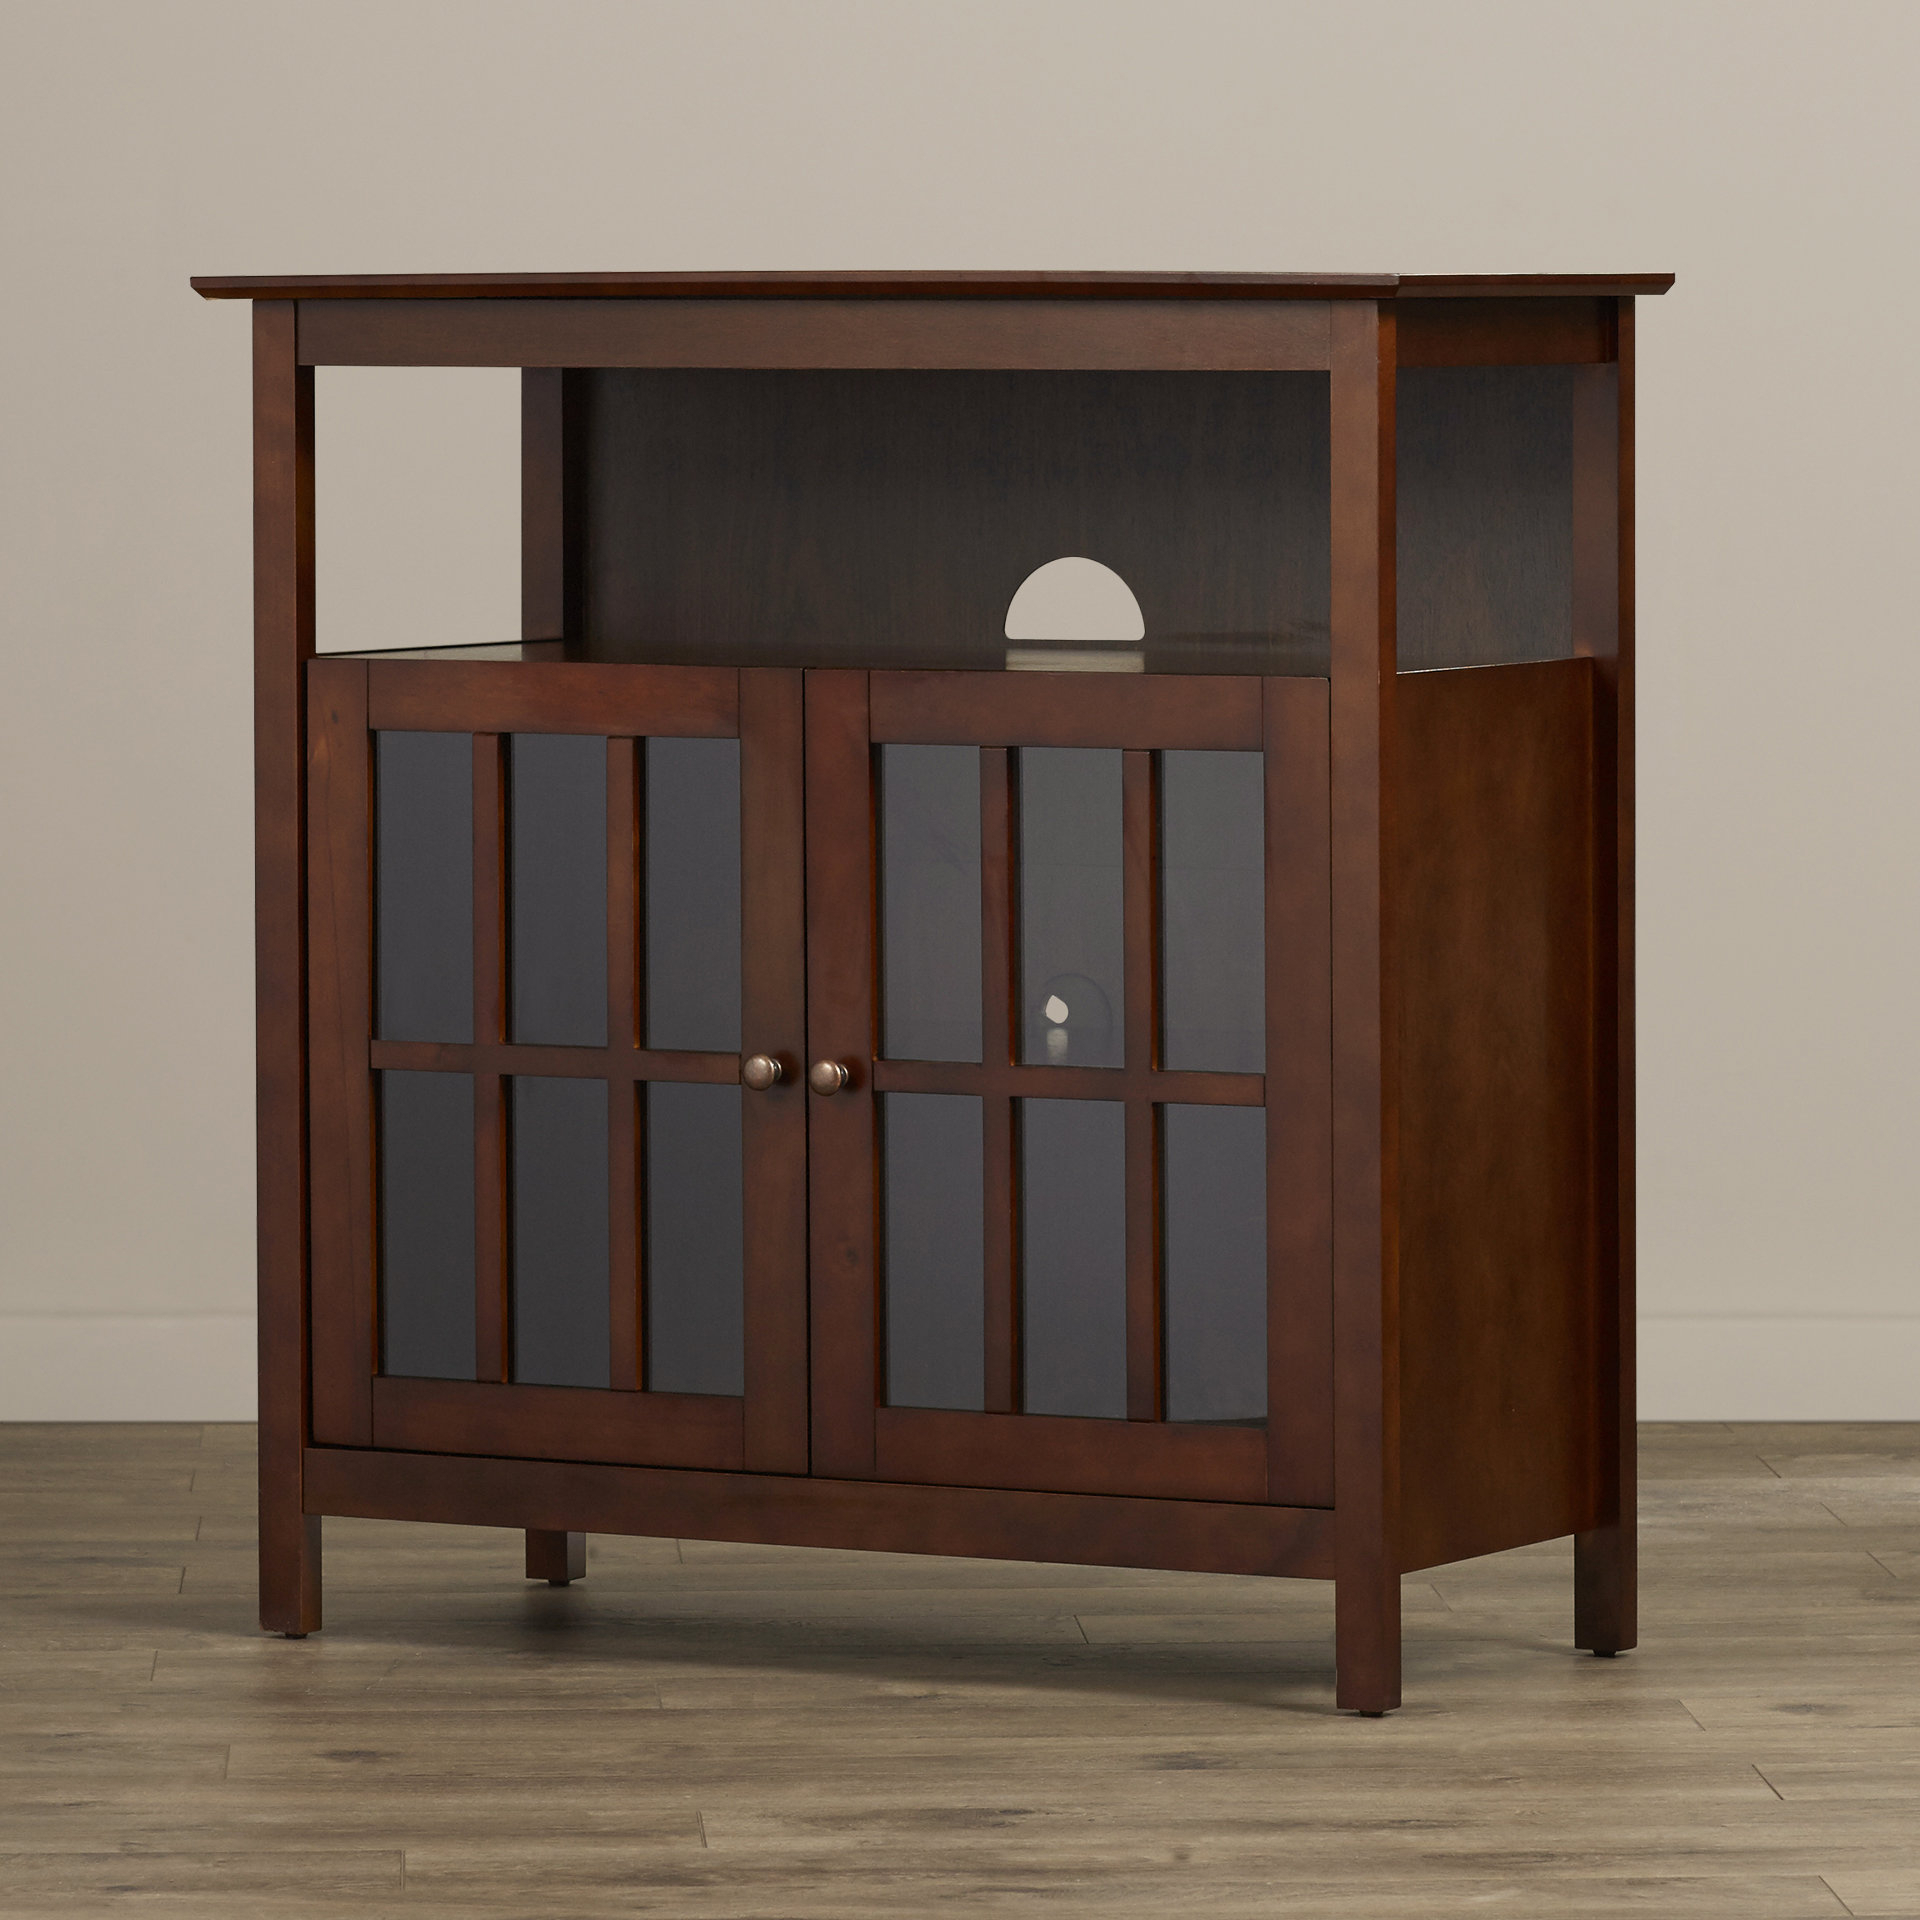 Tv Stands & Entertainment Centers You'll Love | Wayfair Intended For Sinclair Blue 64 Inch Tv Stands (View 19 of 30)